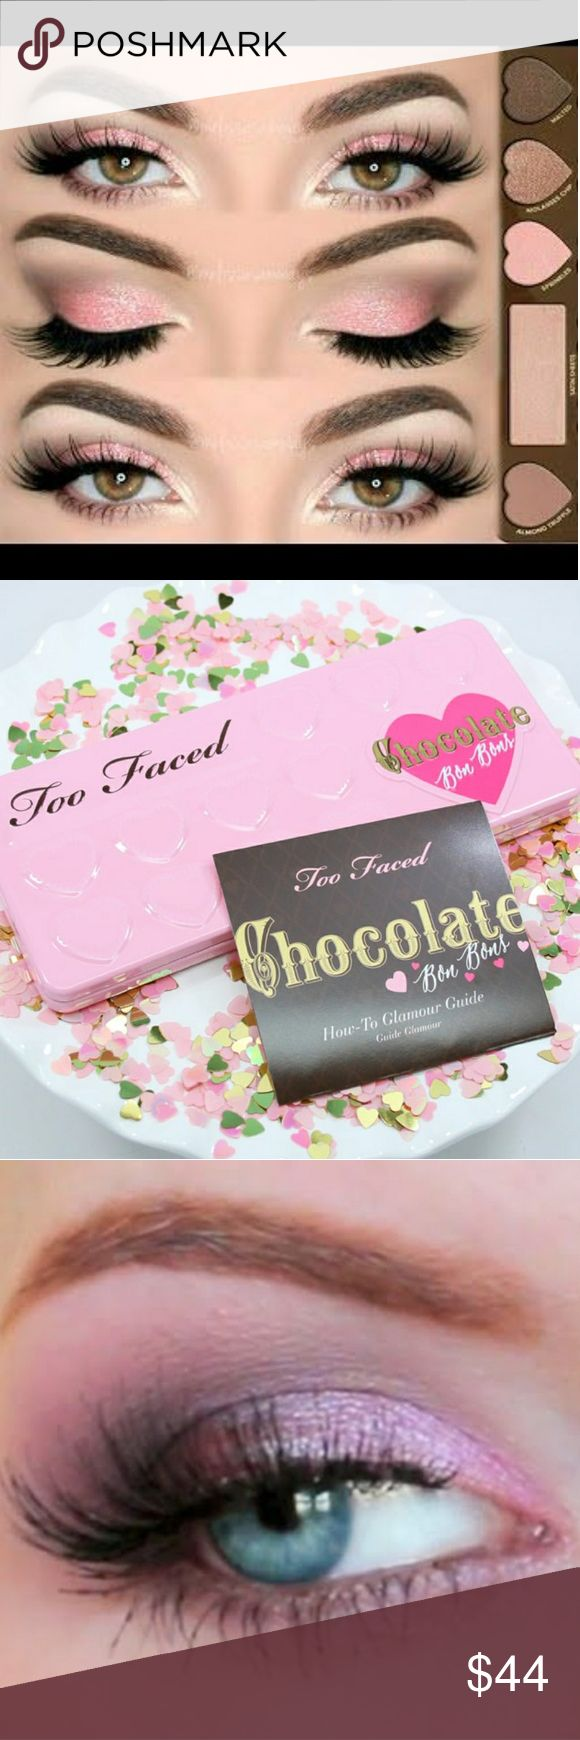 TOO FACED Chocolate Bon Bons Palette (Original) This palette features matte and shimmer eye shades in cool pops of color, brights, and beautiful neutrals. Hardly used i swatch 4 shadows looks like new no box. Too Faced Makeup Eyeshadow